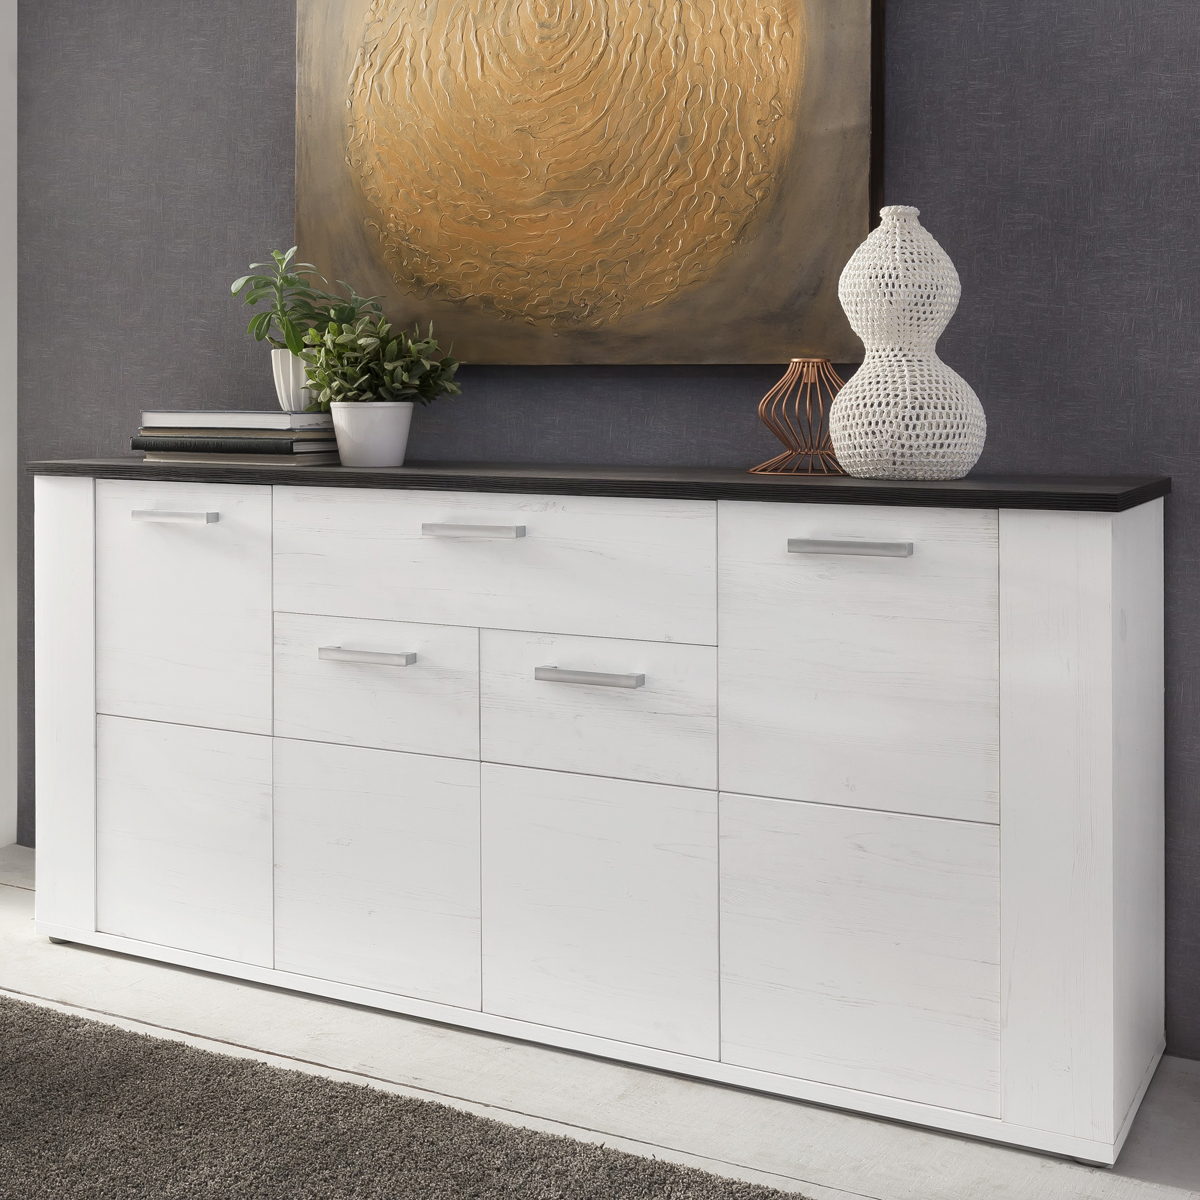 sideboard dakota in pinie wei struktur touchwood dunkelbraun kommode wohnzimmer ebay. Black Bedroom Furniture Sets. Home Design Ideas